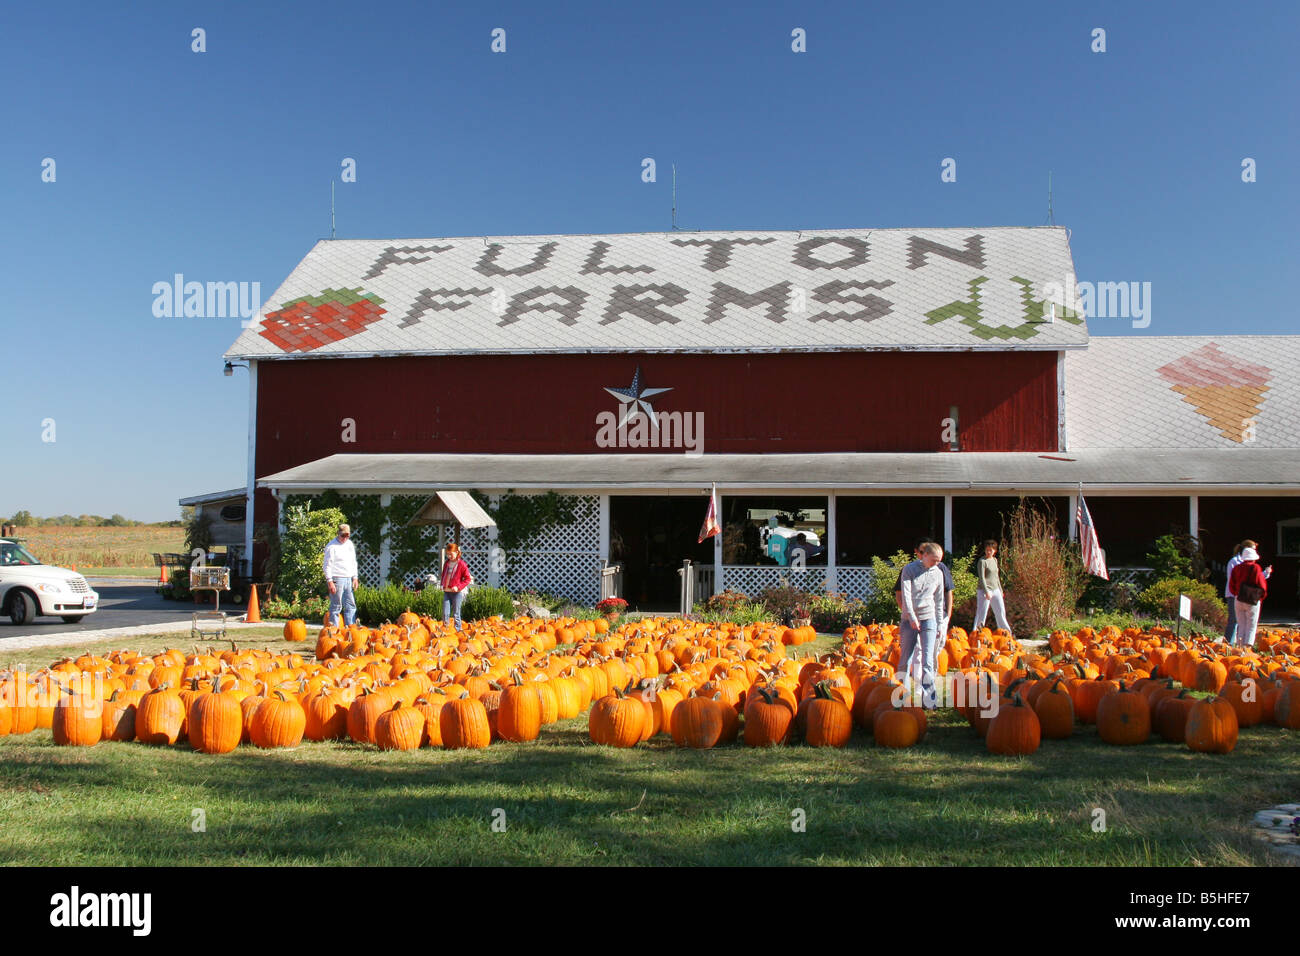 How to store pumpkins - Fulton Farms Store Pumpkins For Sale Fulton Farms Troy Ohio